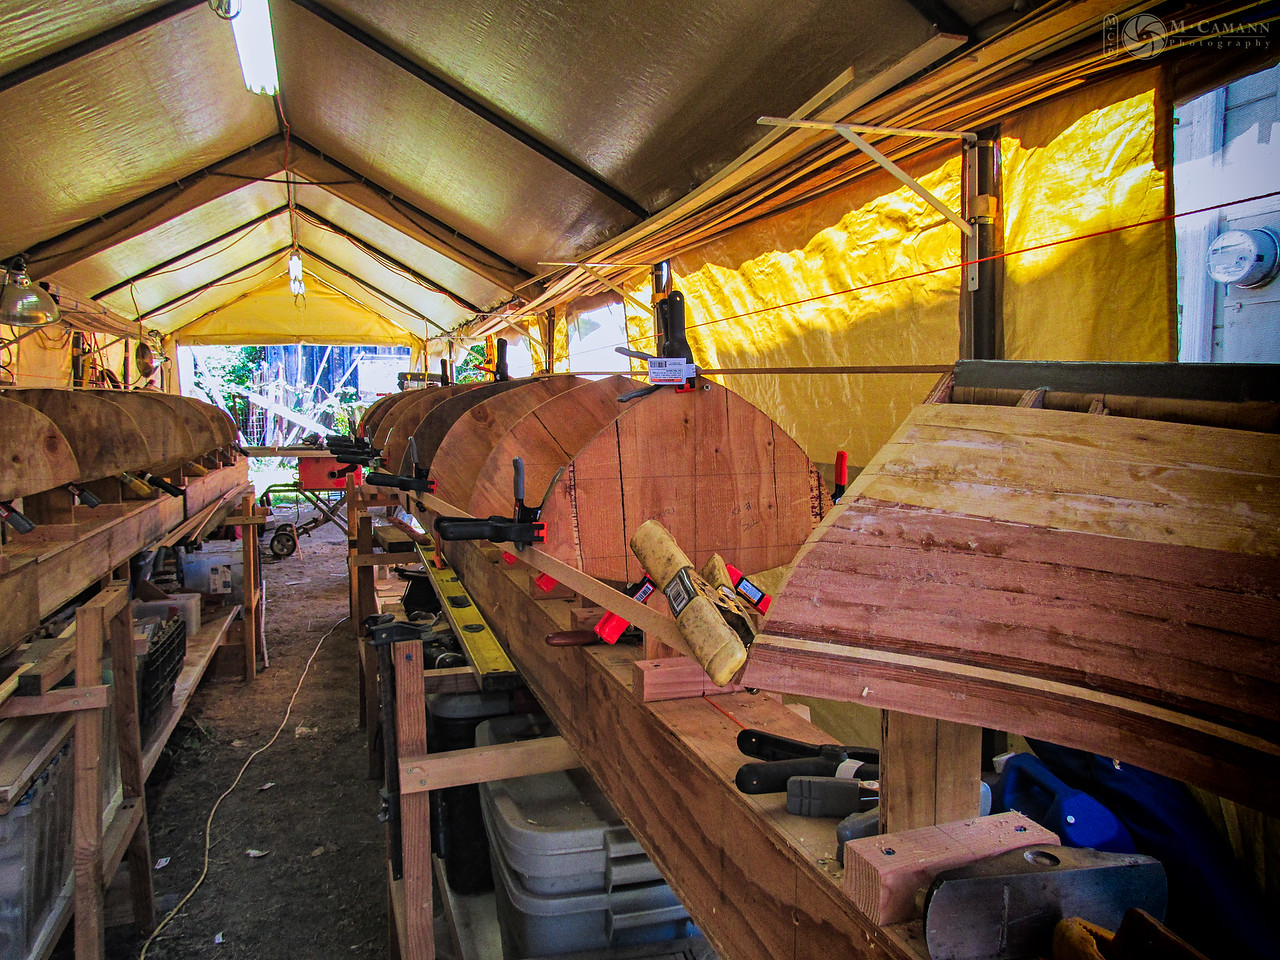 Lining up station molds for the Twin Star tandem. June 23, 2015.